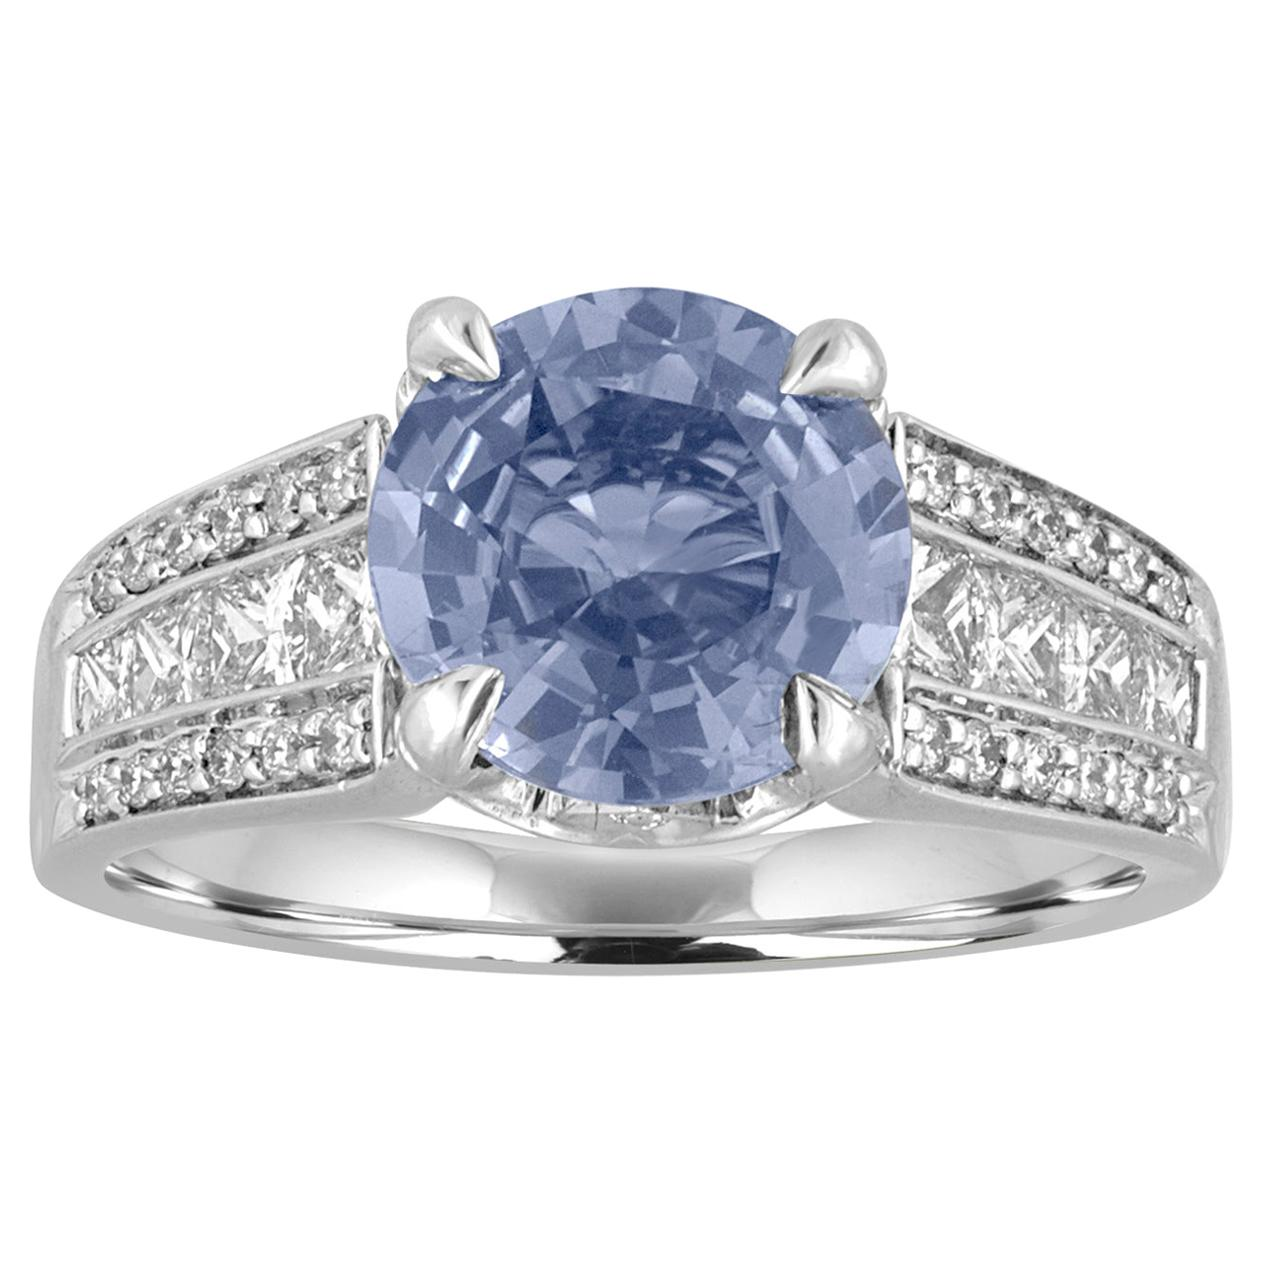 Certified No Heat 3.02 Carat Round Blue Sapphire and Diamond Gold Ring